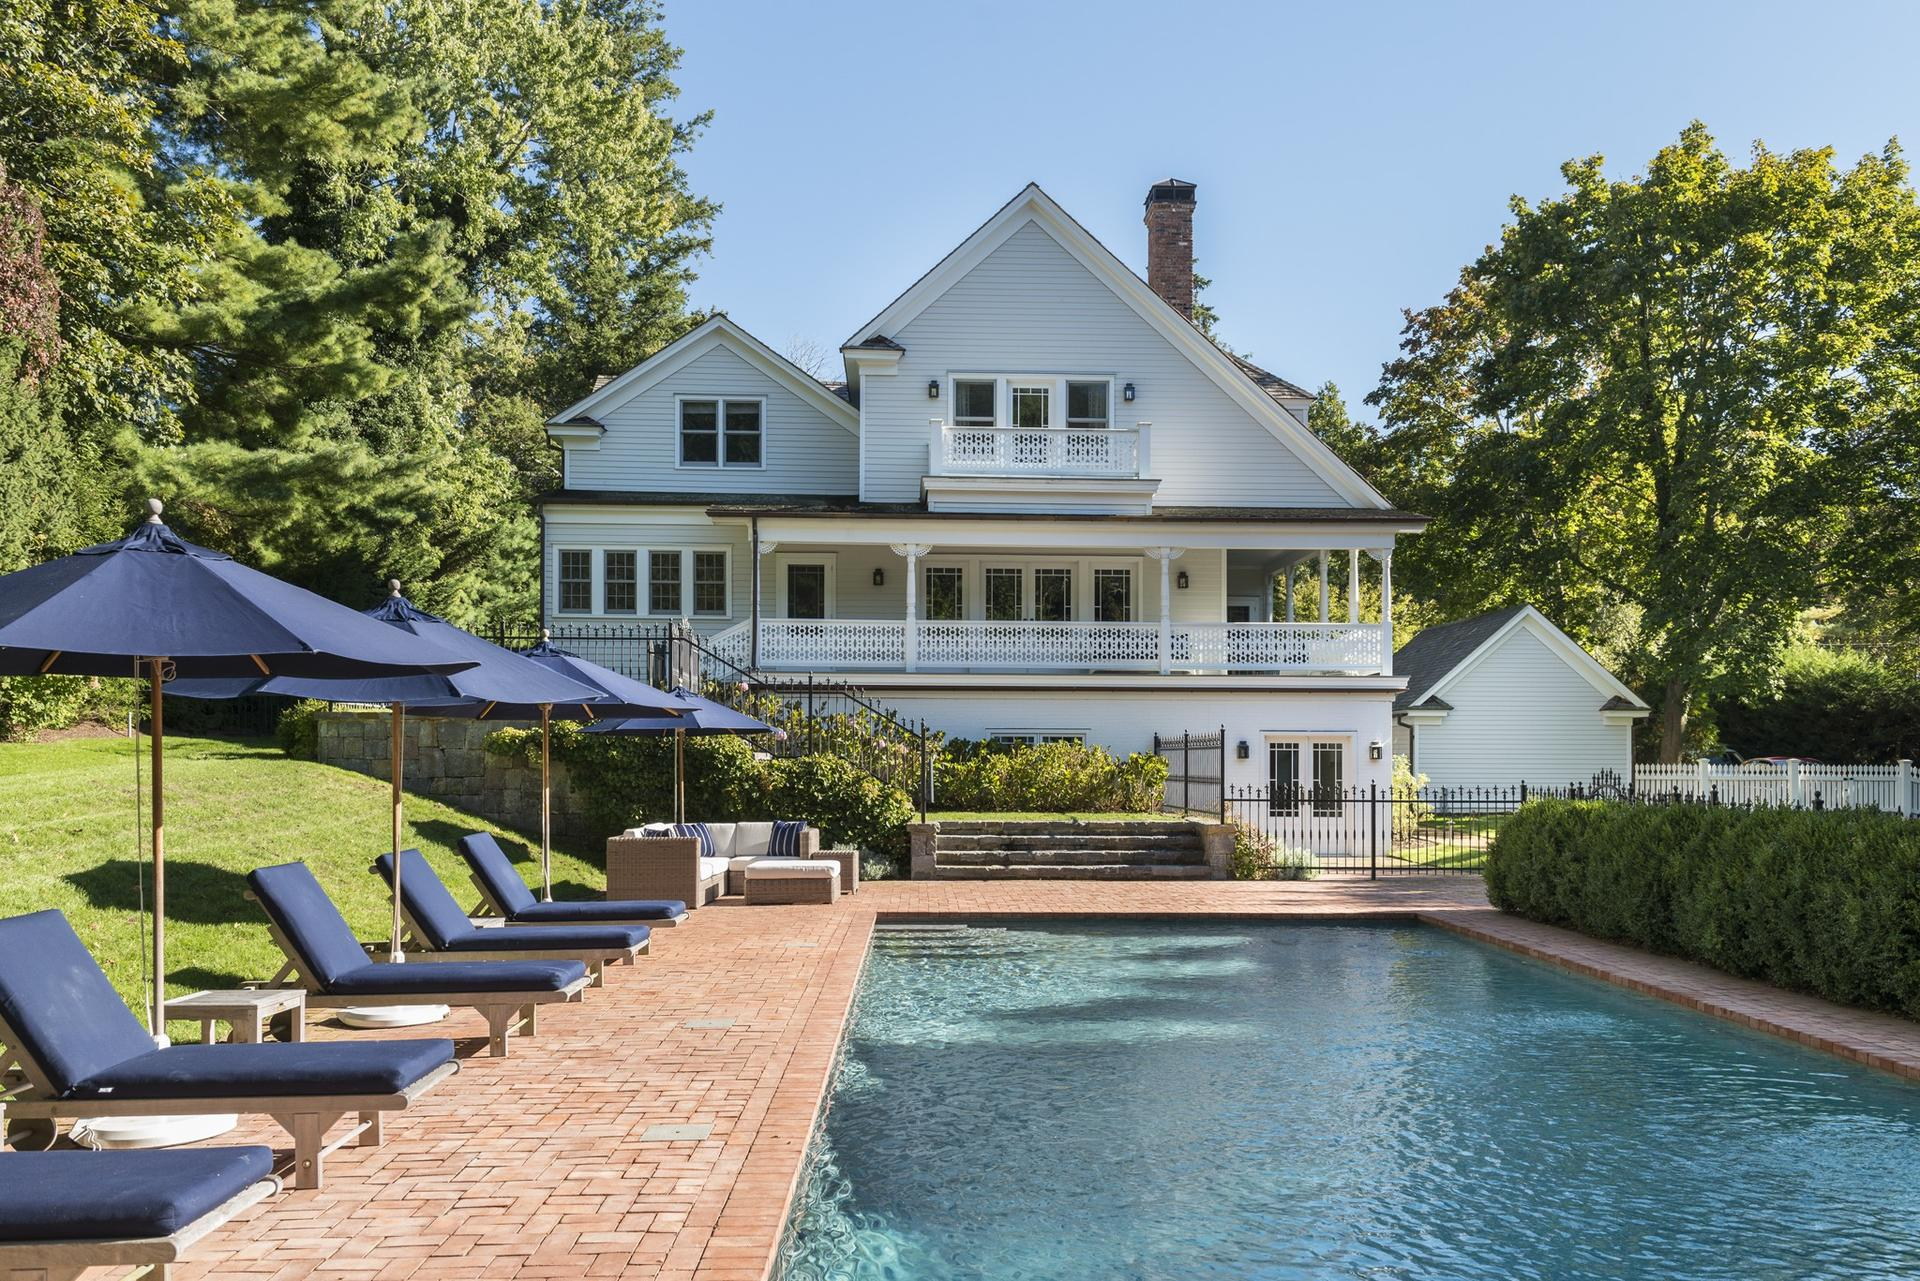 Single Family Home for Sale at Historic Sag Harbor Village 71 Jermain Avenue, Sag Harbor, New York